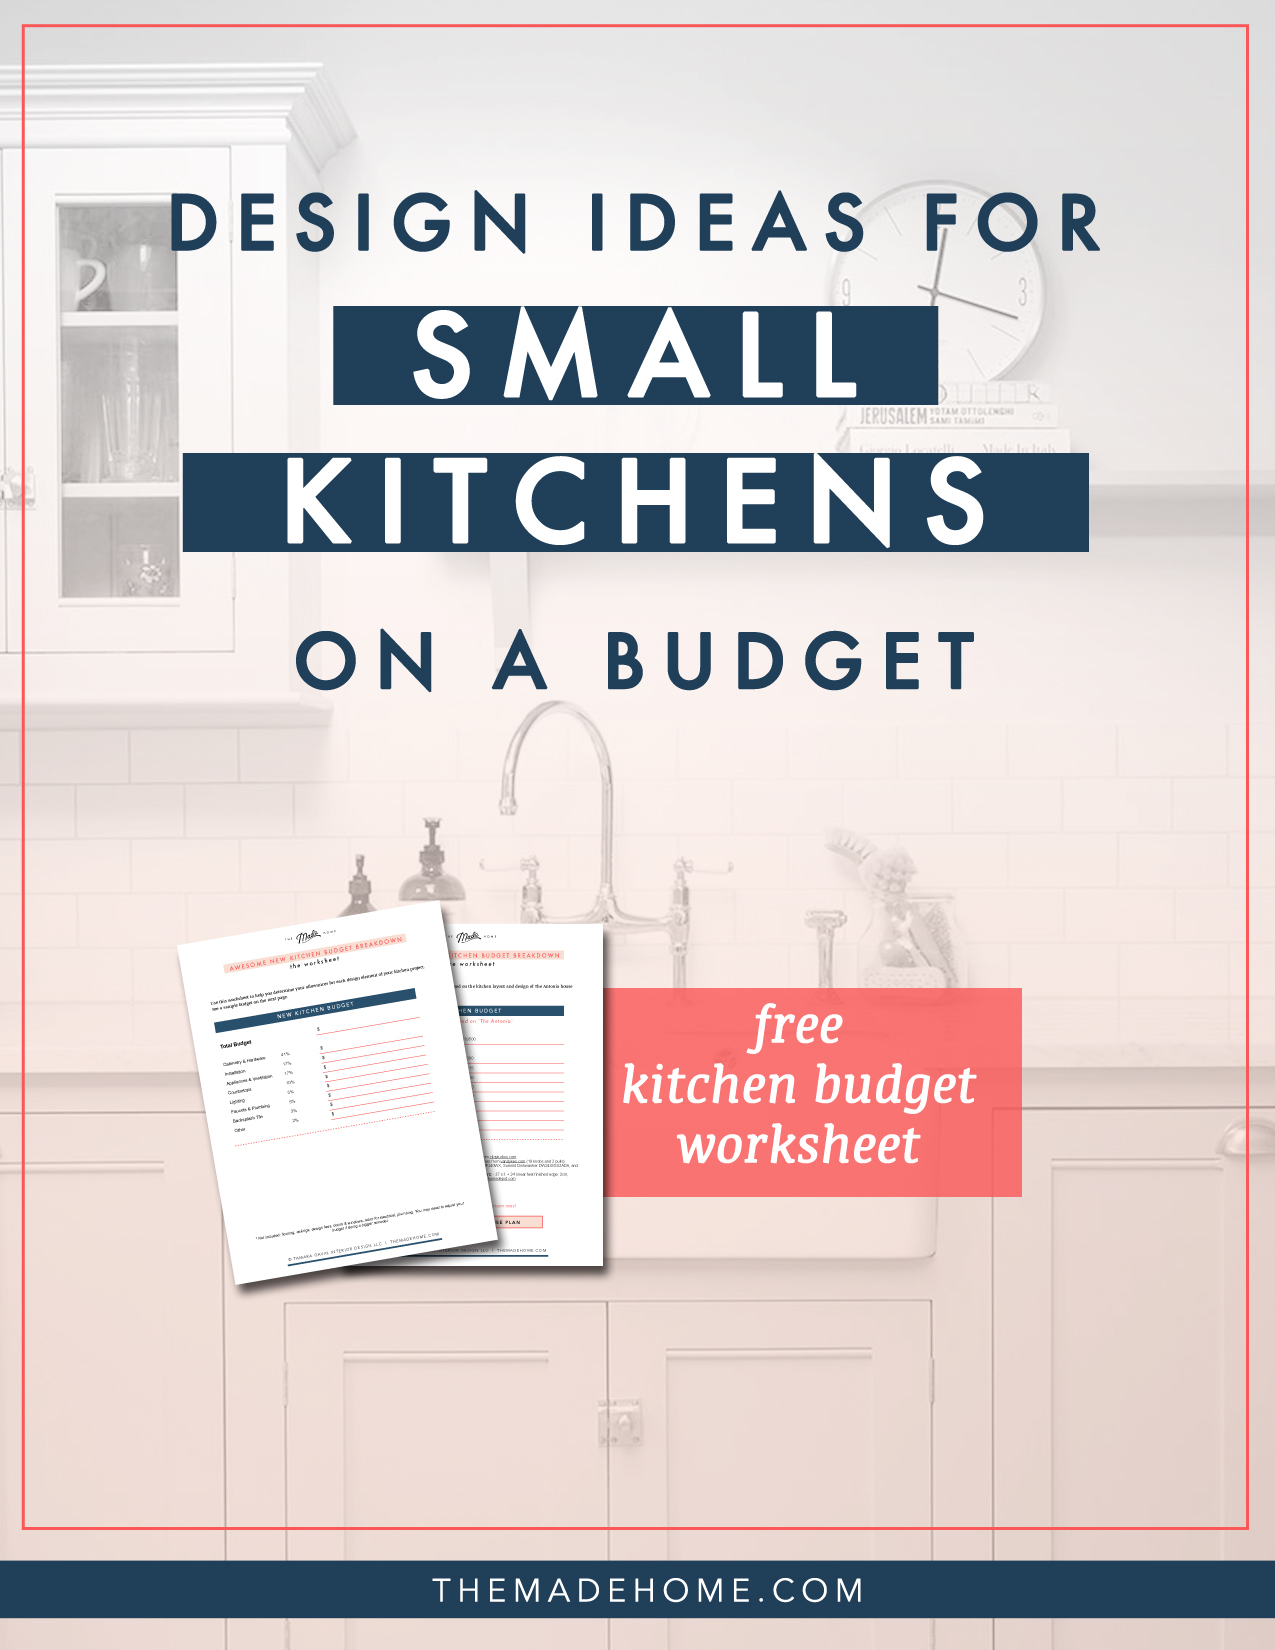 Get Small Kitchen Design Ideas On A Budget And A Free